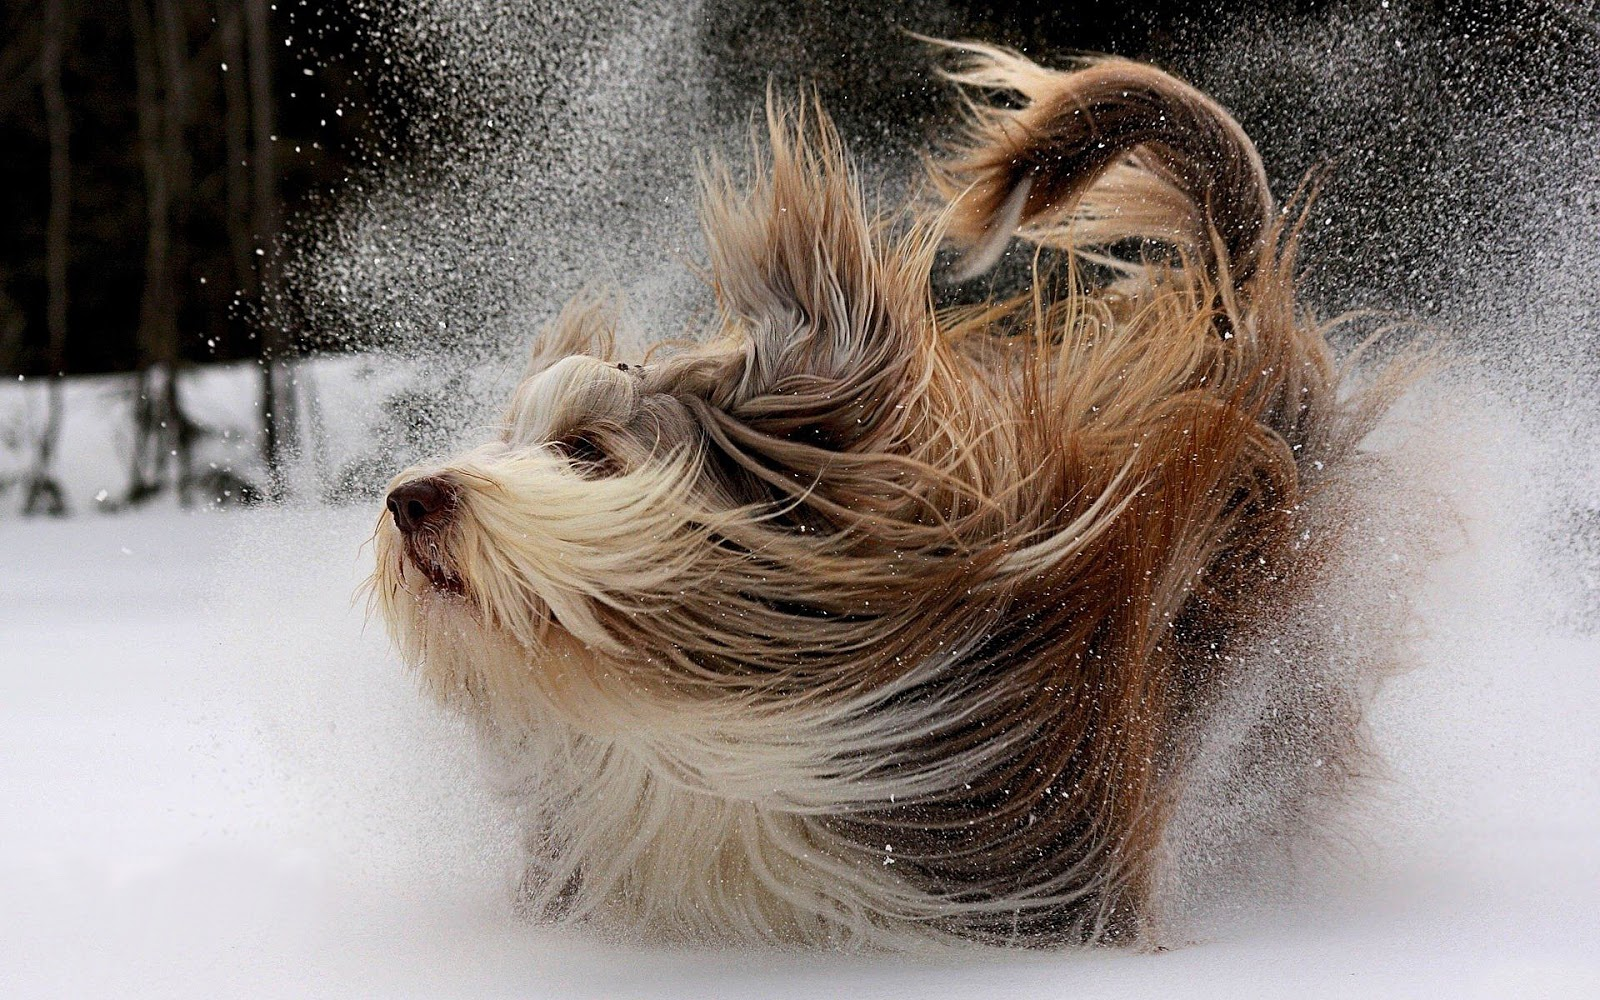 wallpaper with a cute dog playing in the snow HD winter wallpaper 1600x1000